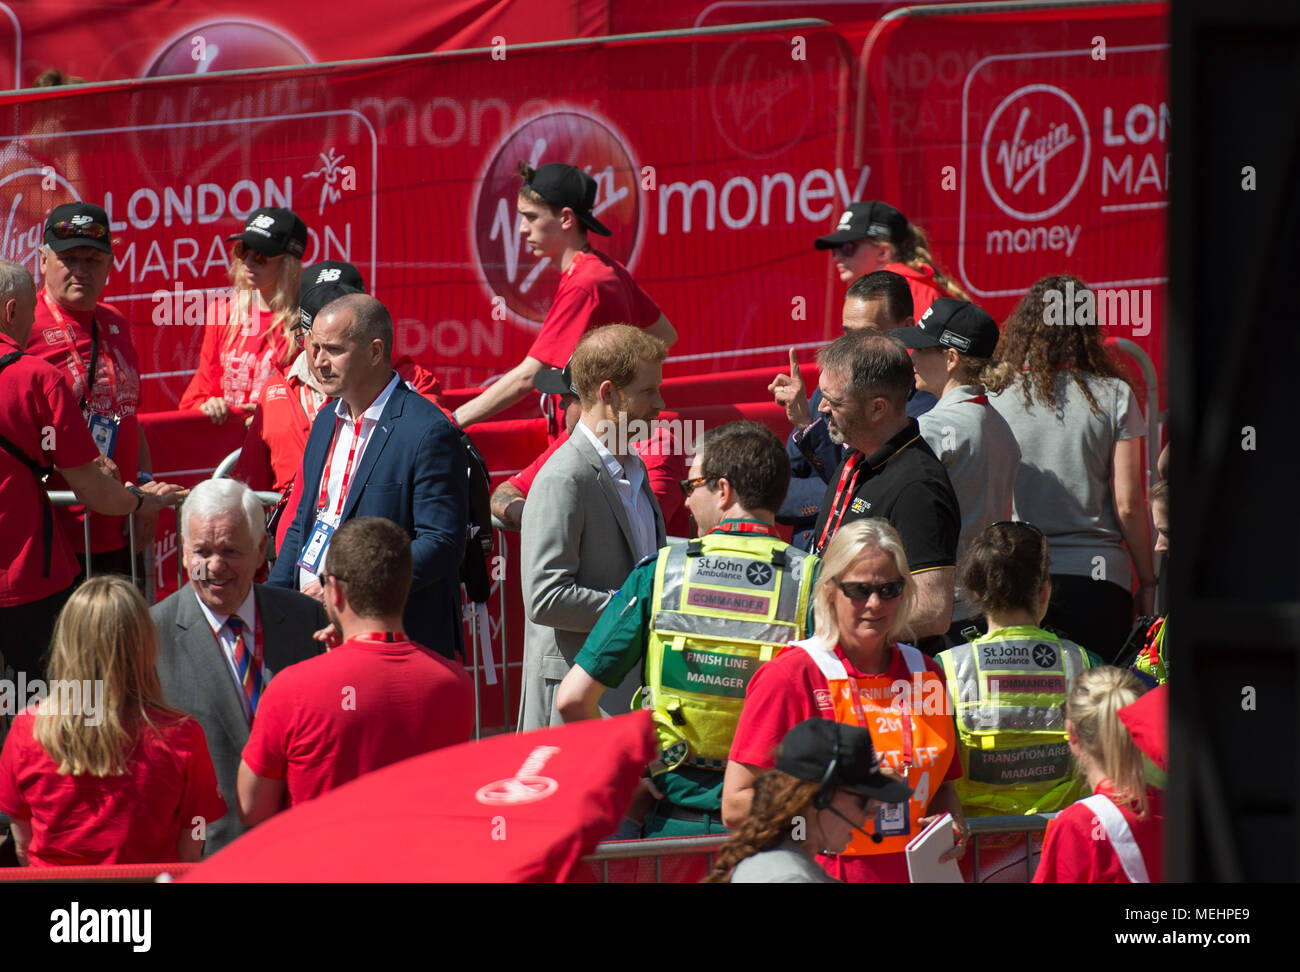 The Mall, London, UK. 22 April 2018. The Virgin Money London Marathon takes place in hot sun with athletes finishing on The Mall. Prince Harry arrives for the medal ceremony. Credit: Malcolm Park/Alamy Live News. Stock Photo